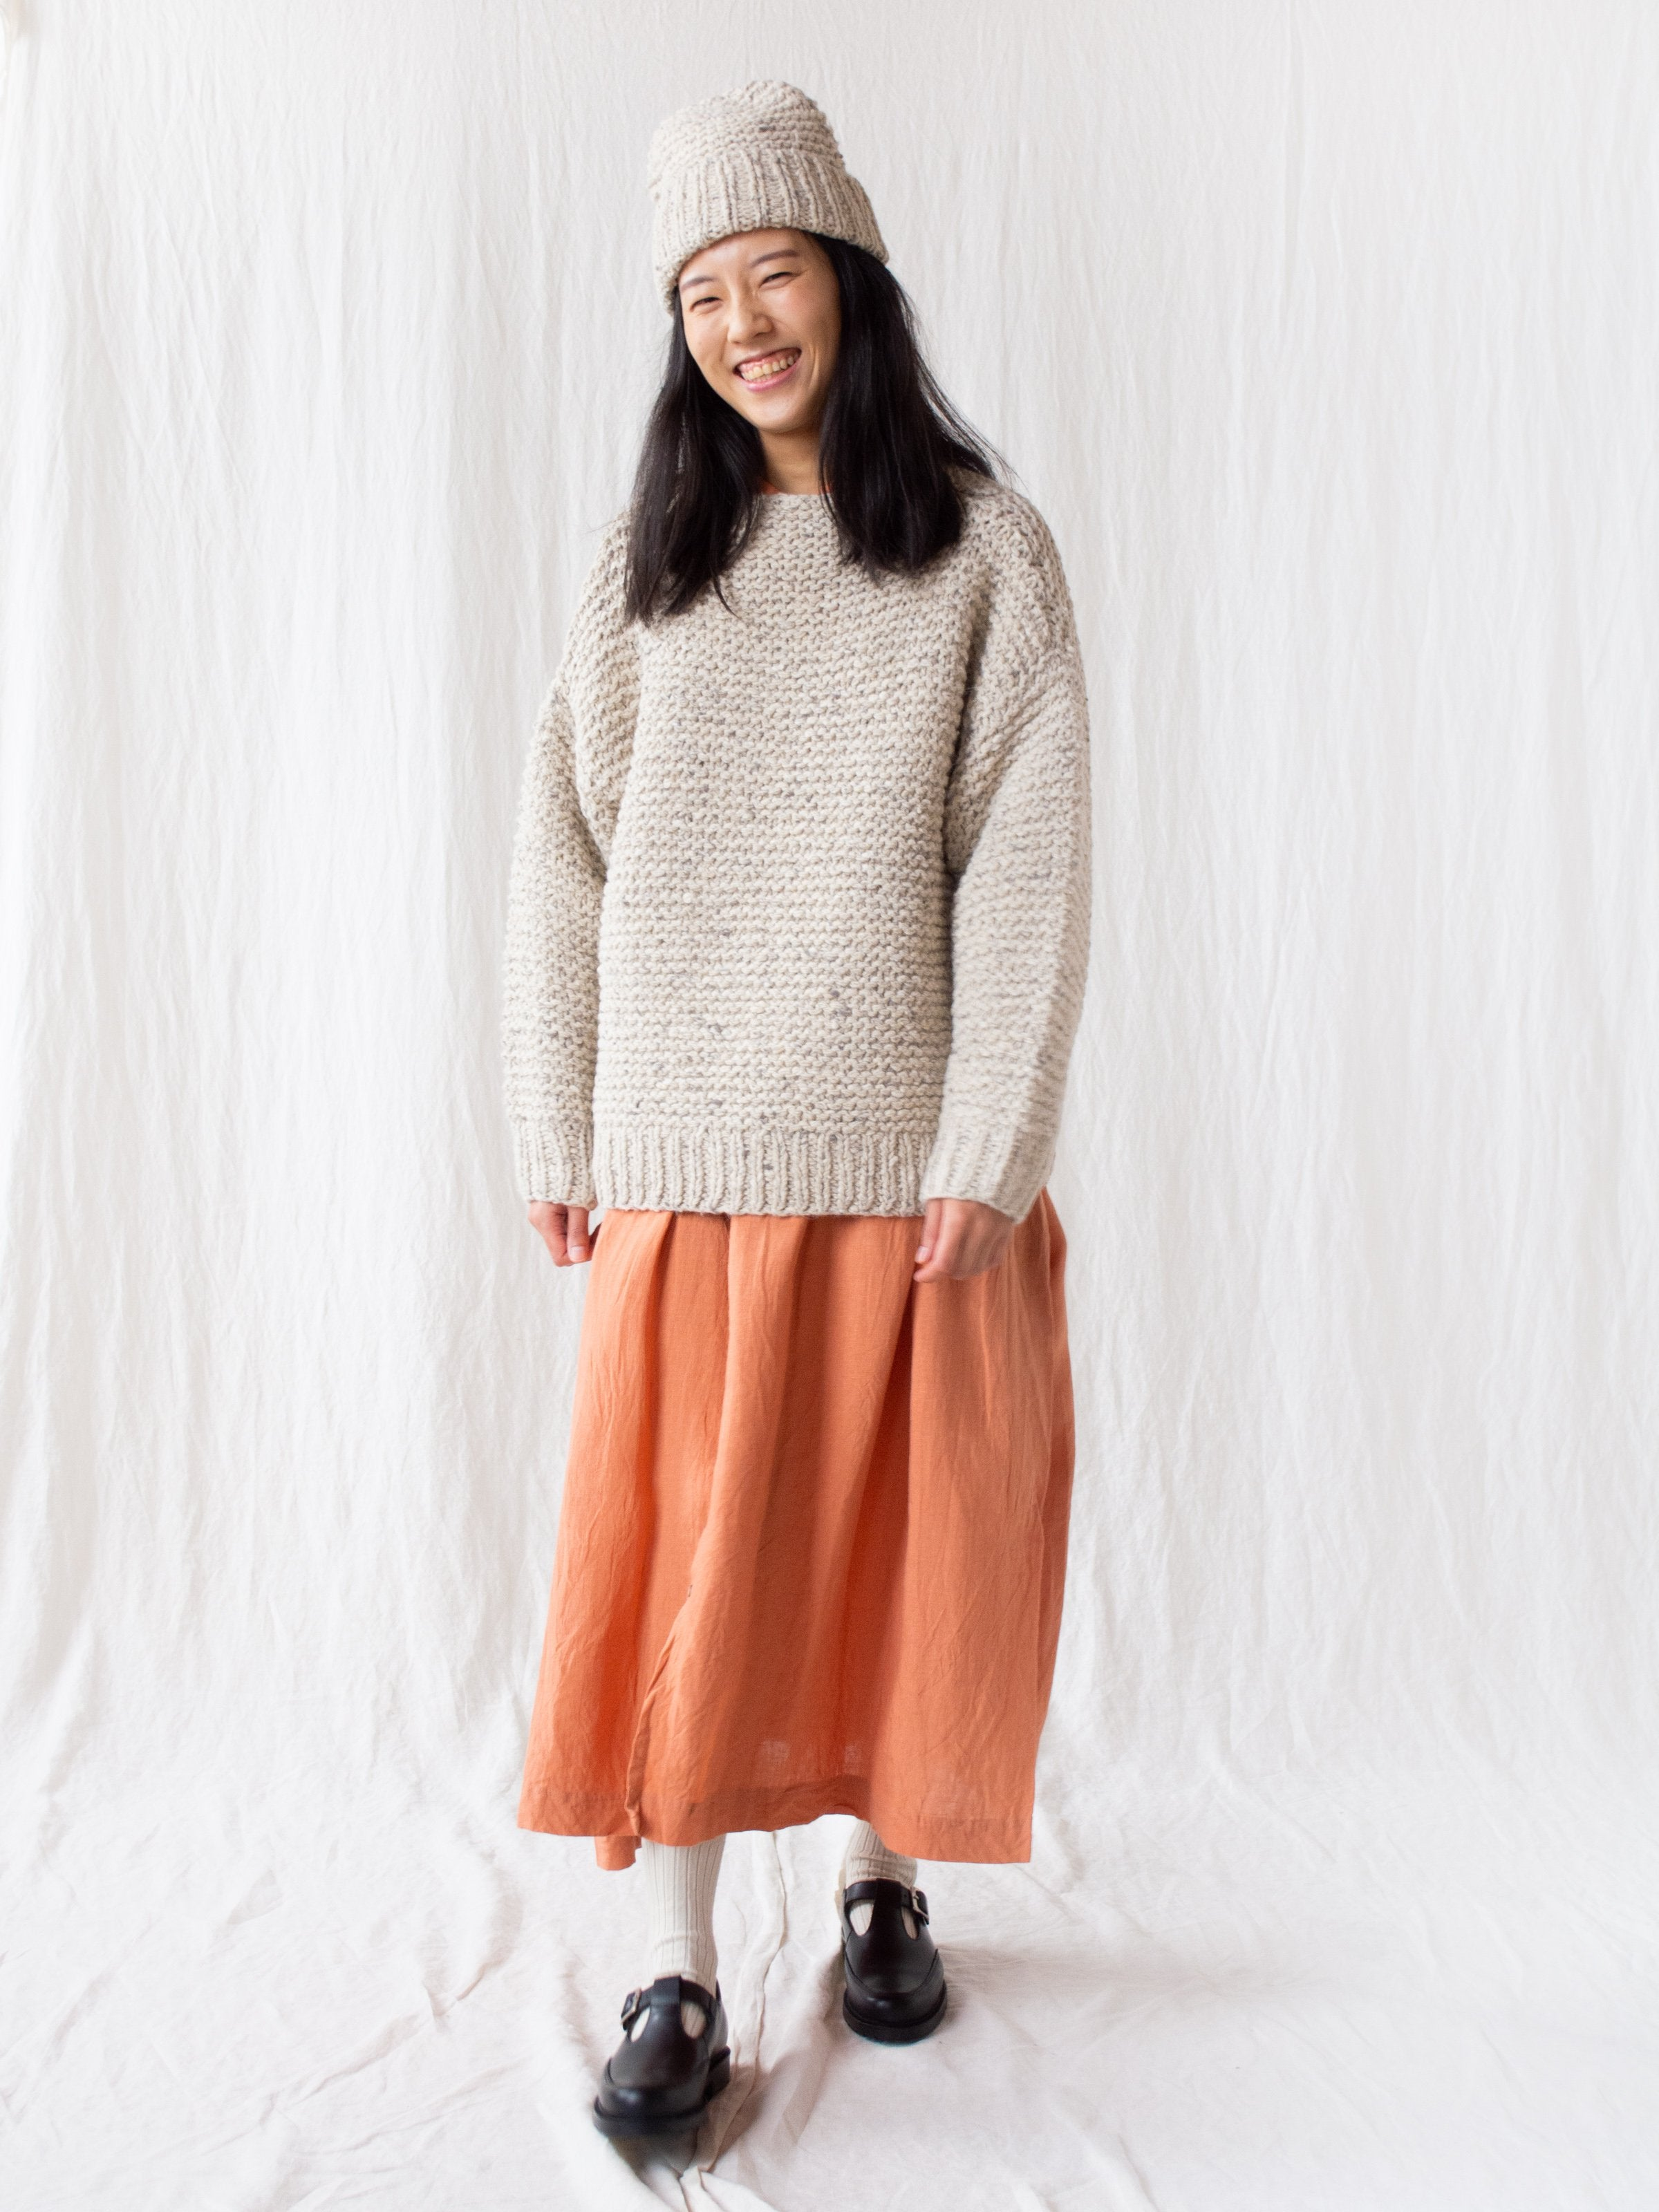 Namu Shop - Ichi Antiquites Wool Angora Knit - Natural